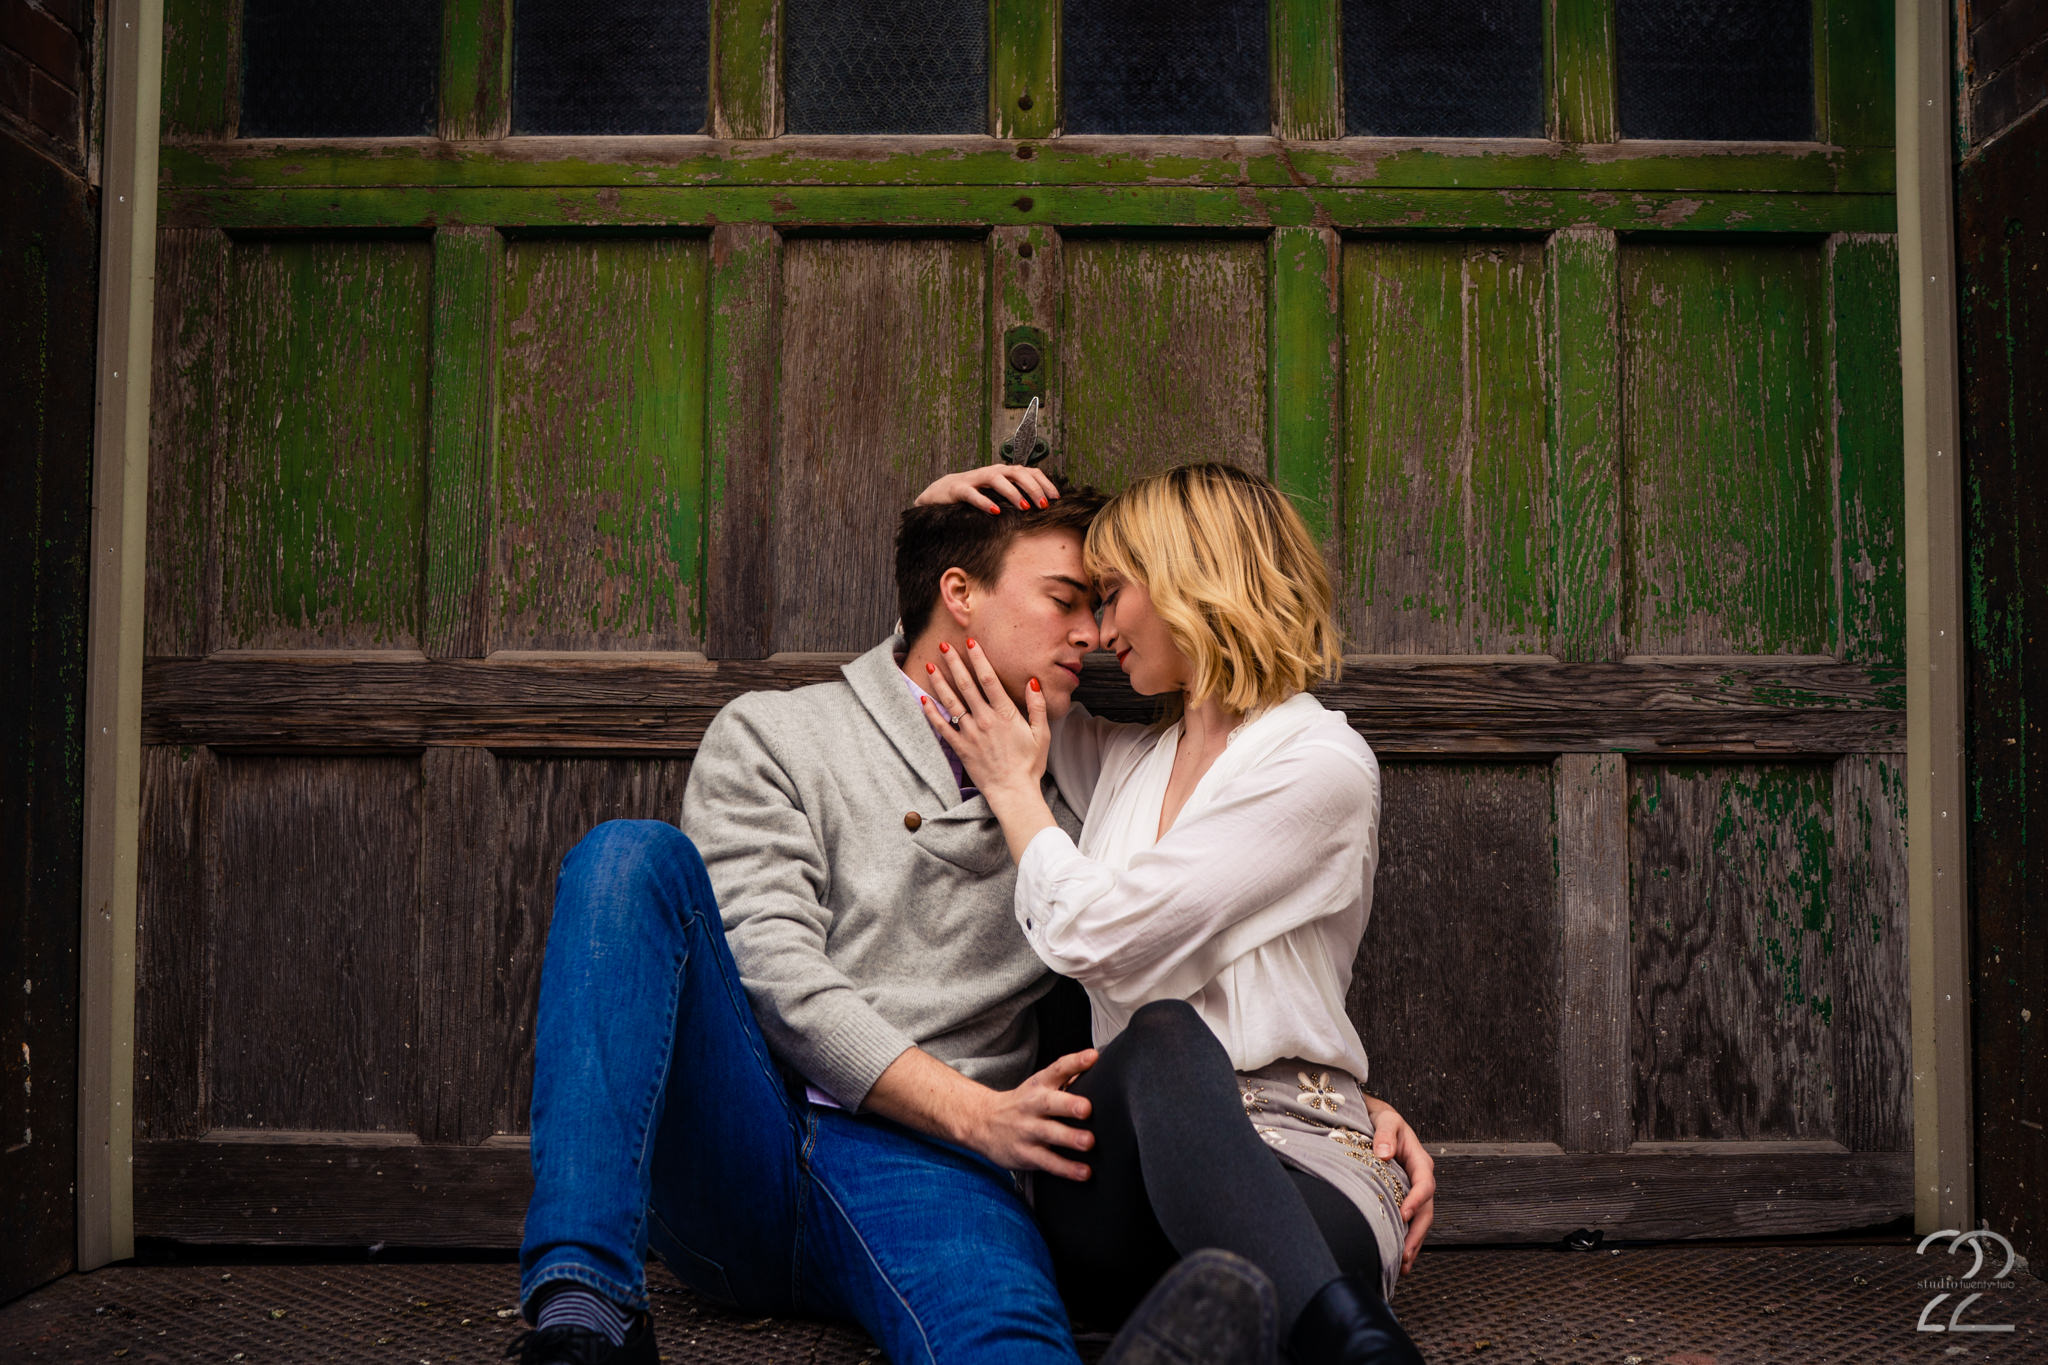 Studio 22 Photography - New Years Eve Engagement Photos